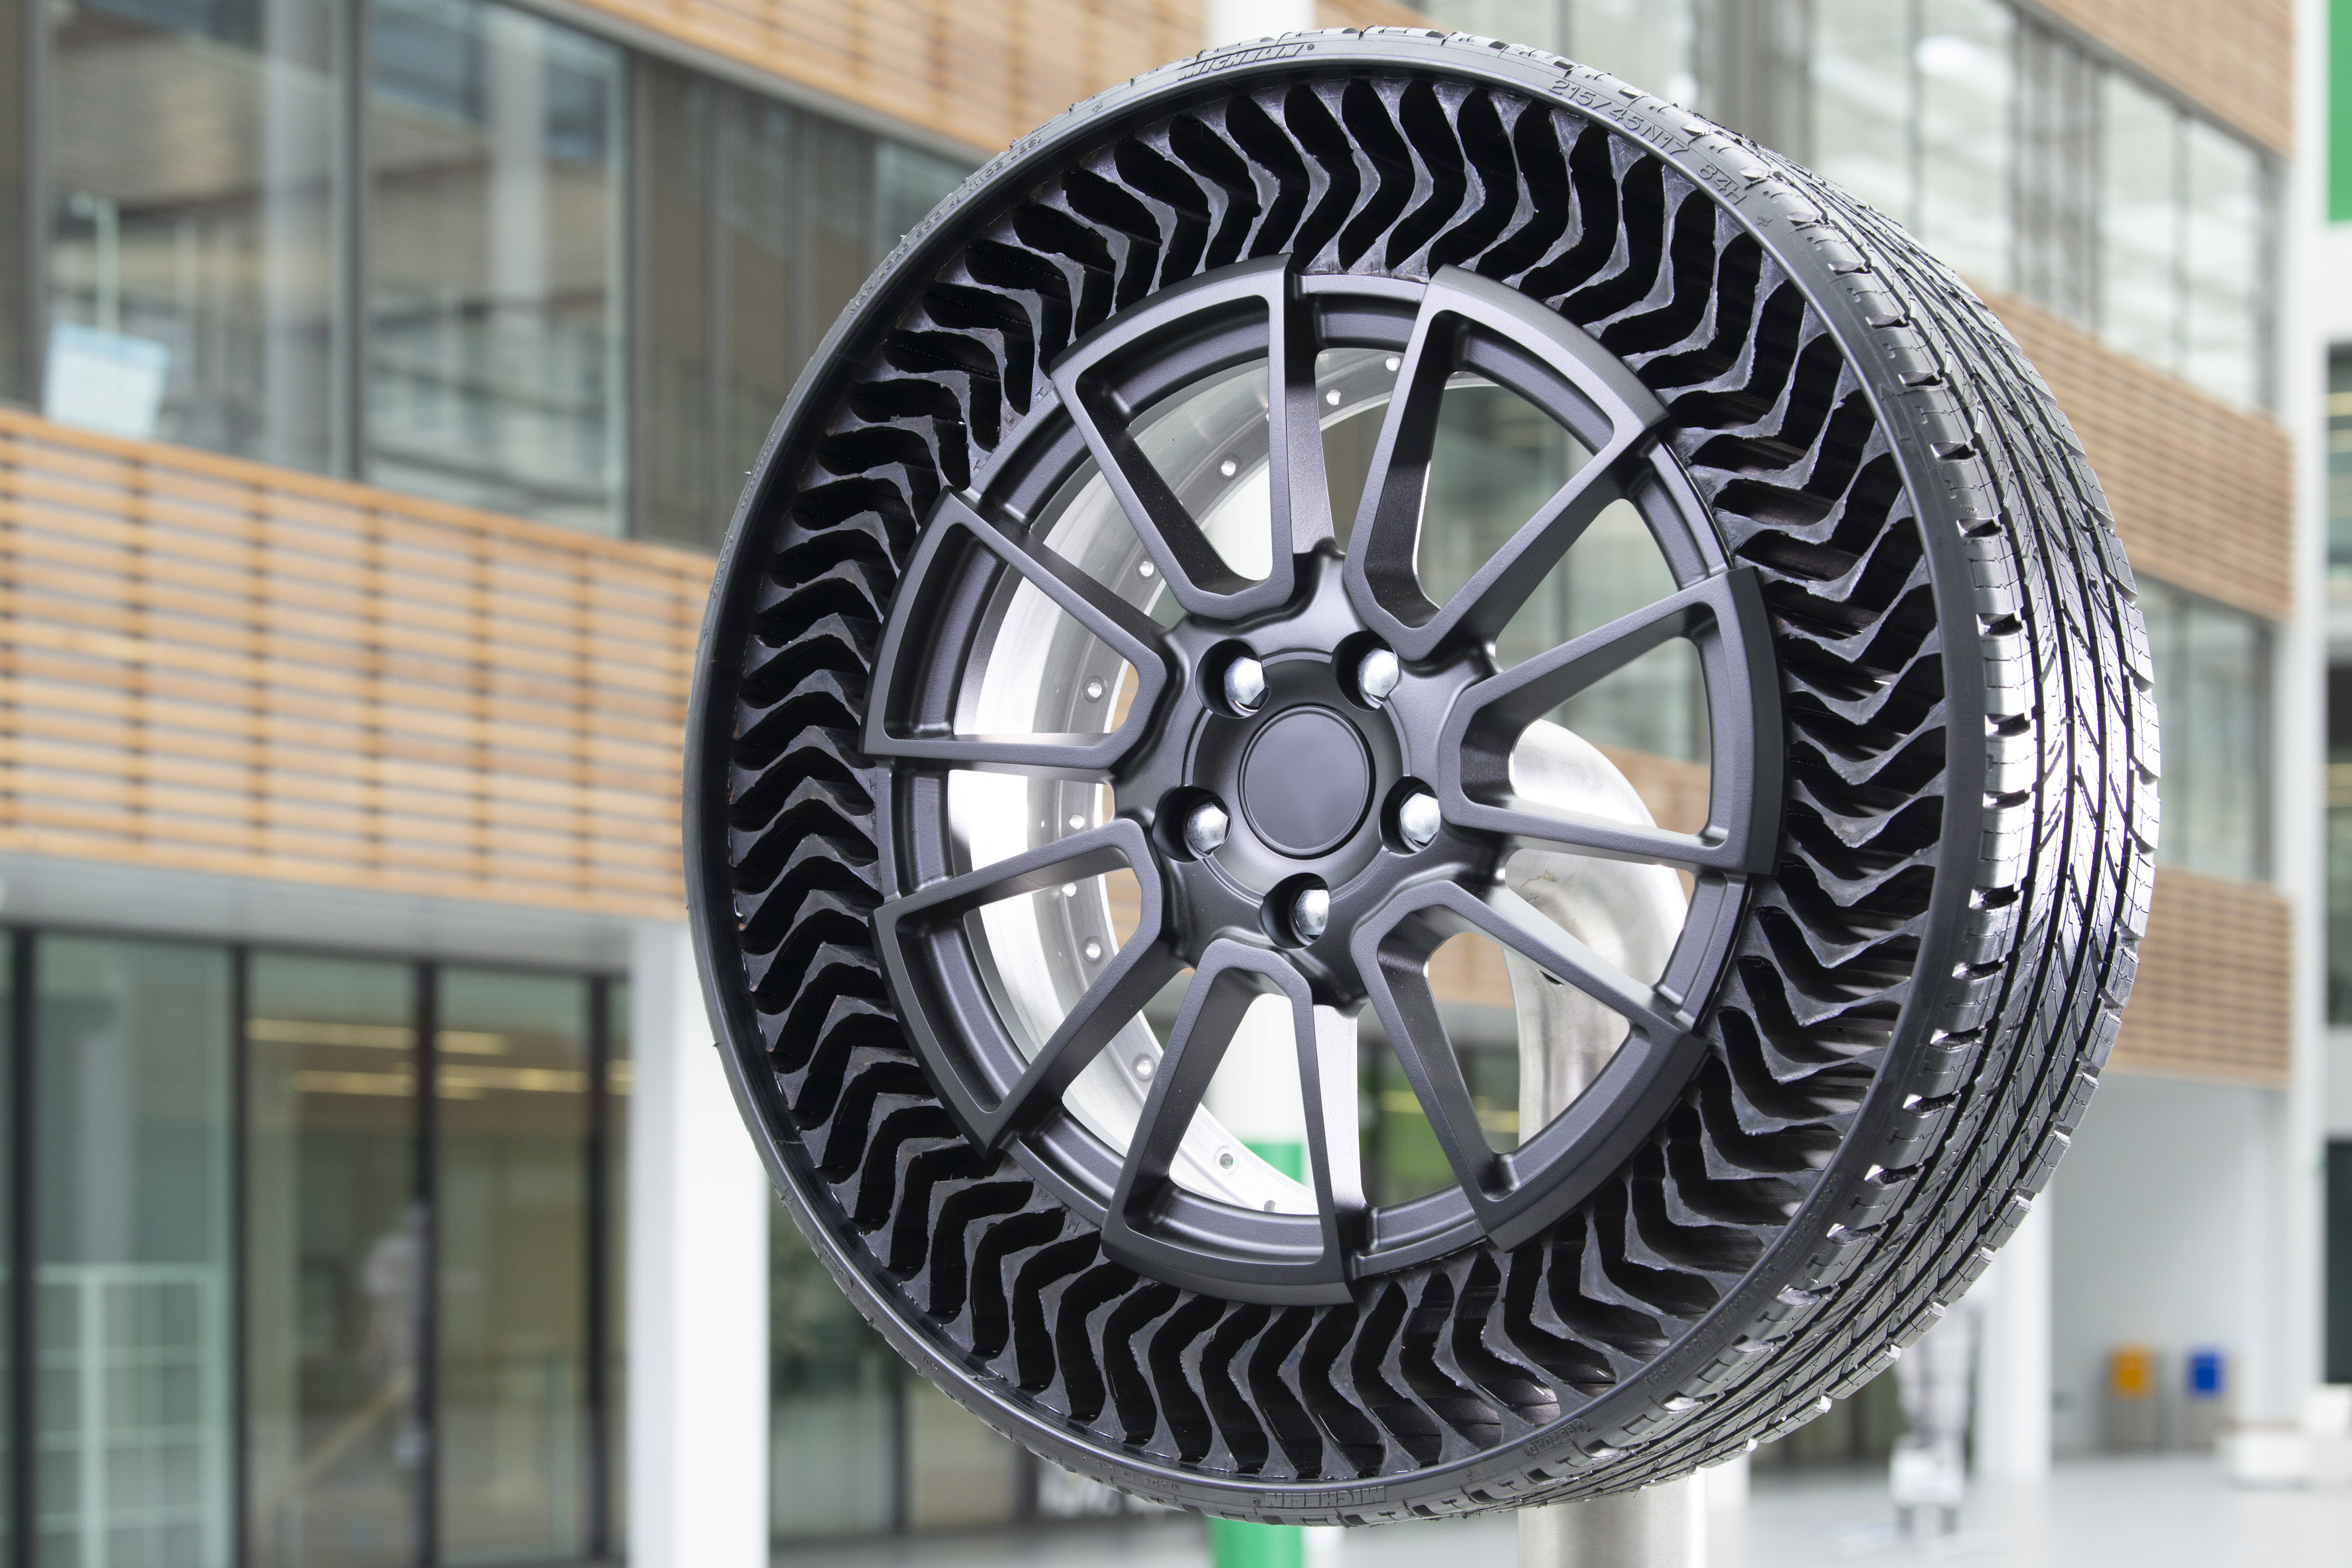 A harvest of awards for UPTIS, the puncture-proof tire developed by MICHELIN